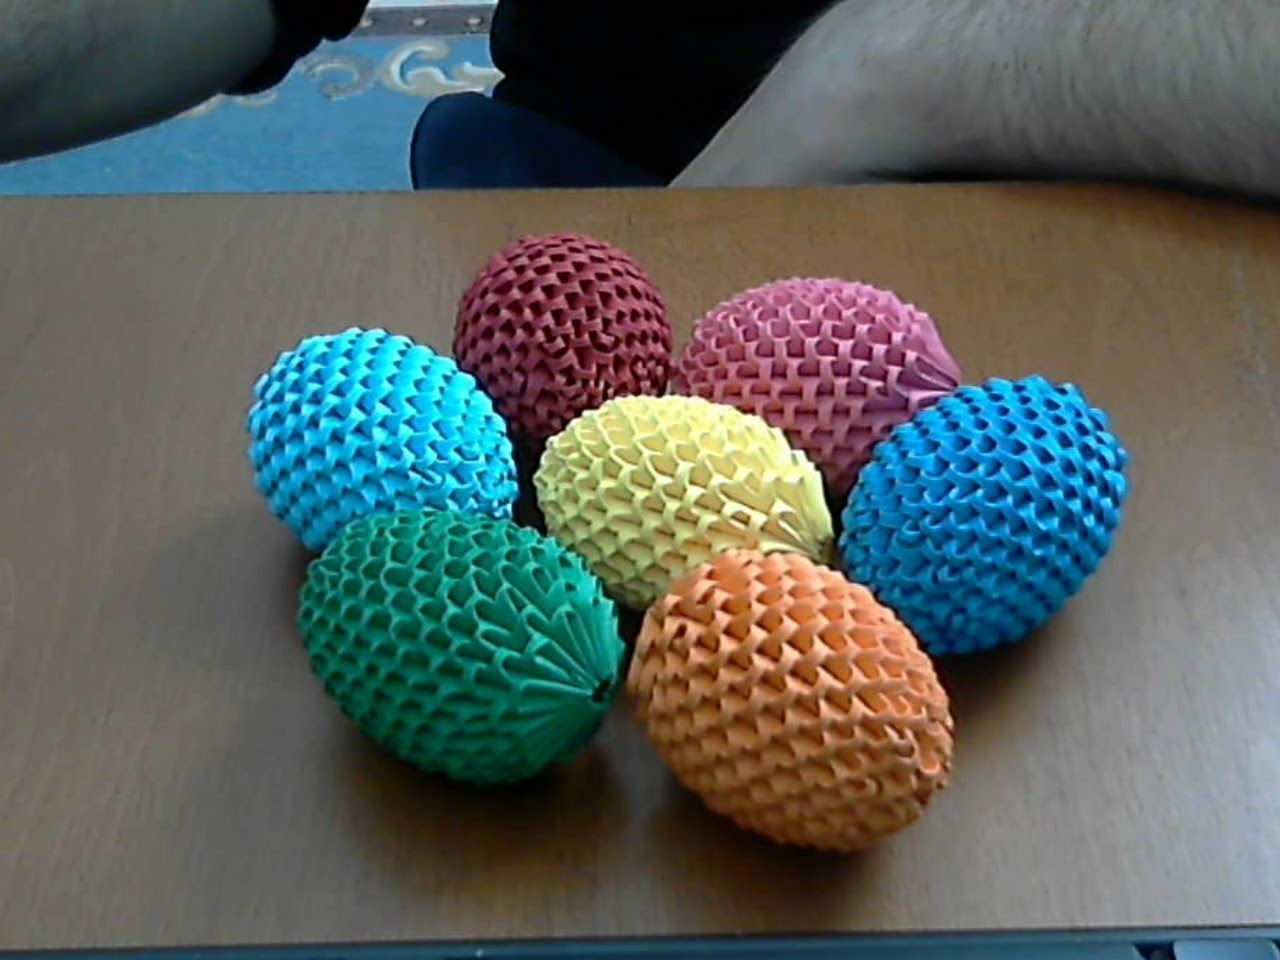 How to make 3d origami Easter egg | 3D origami tutorials ... - photo#50